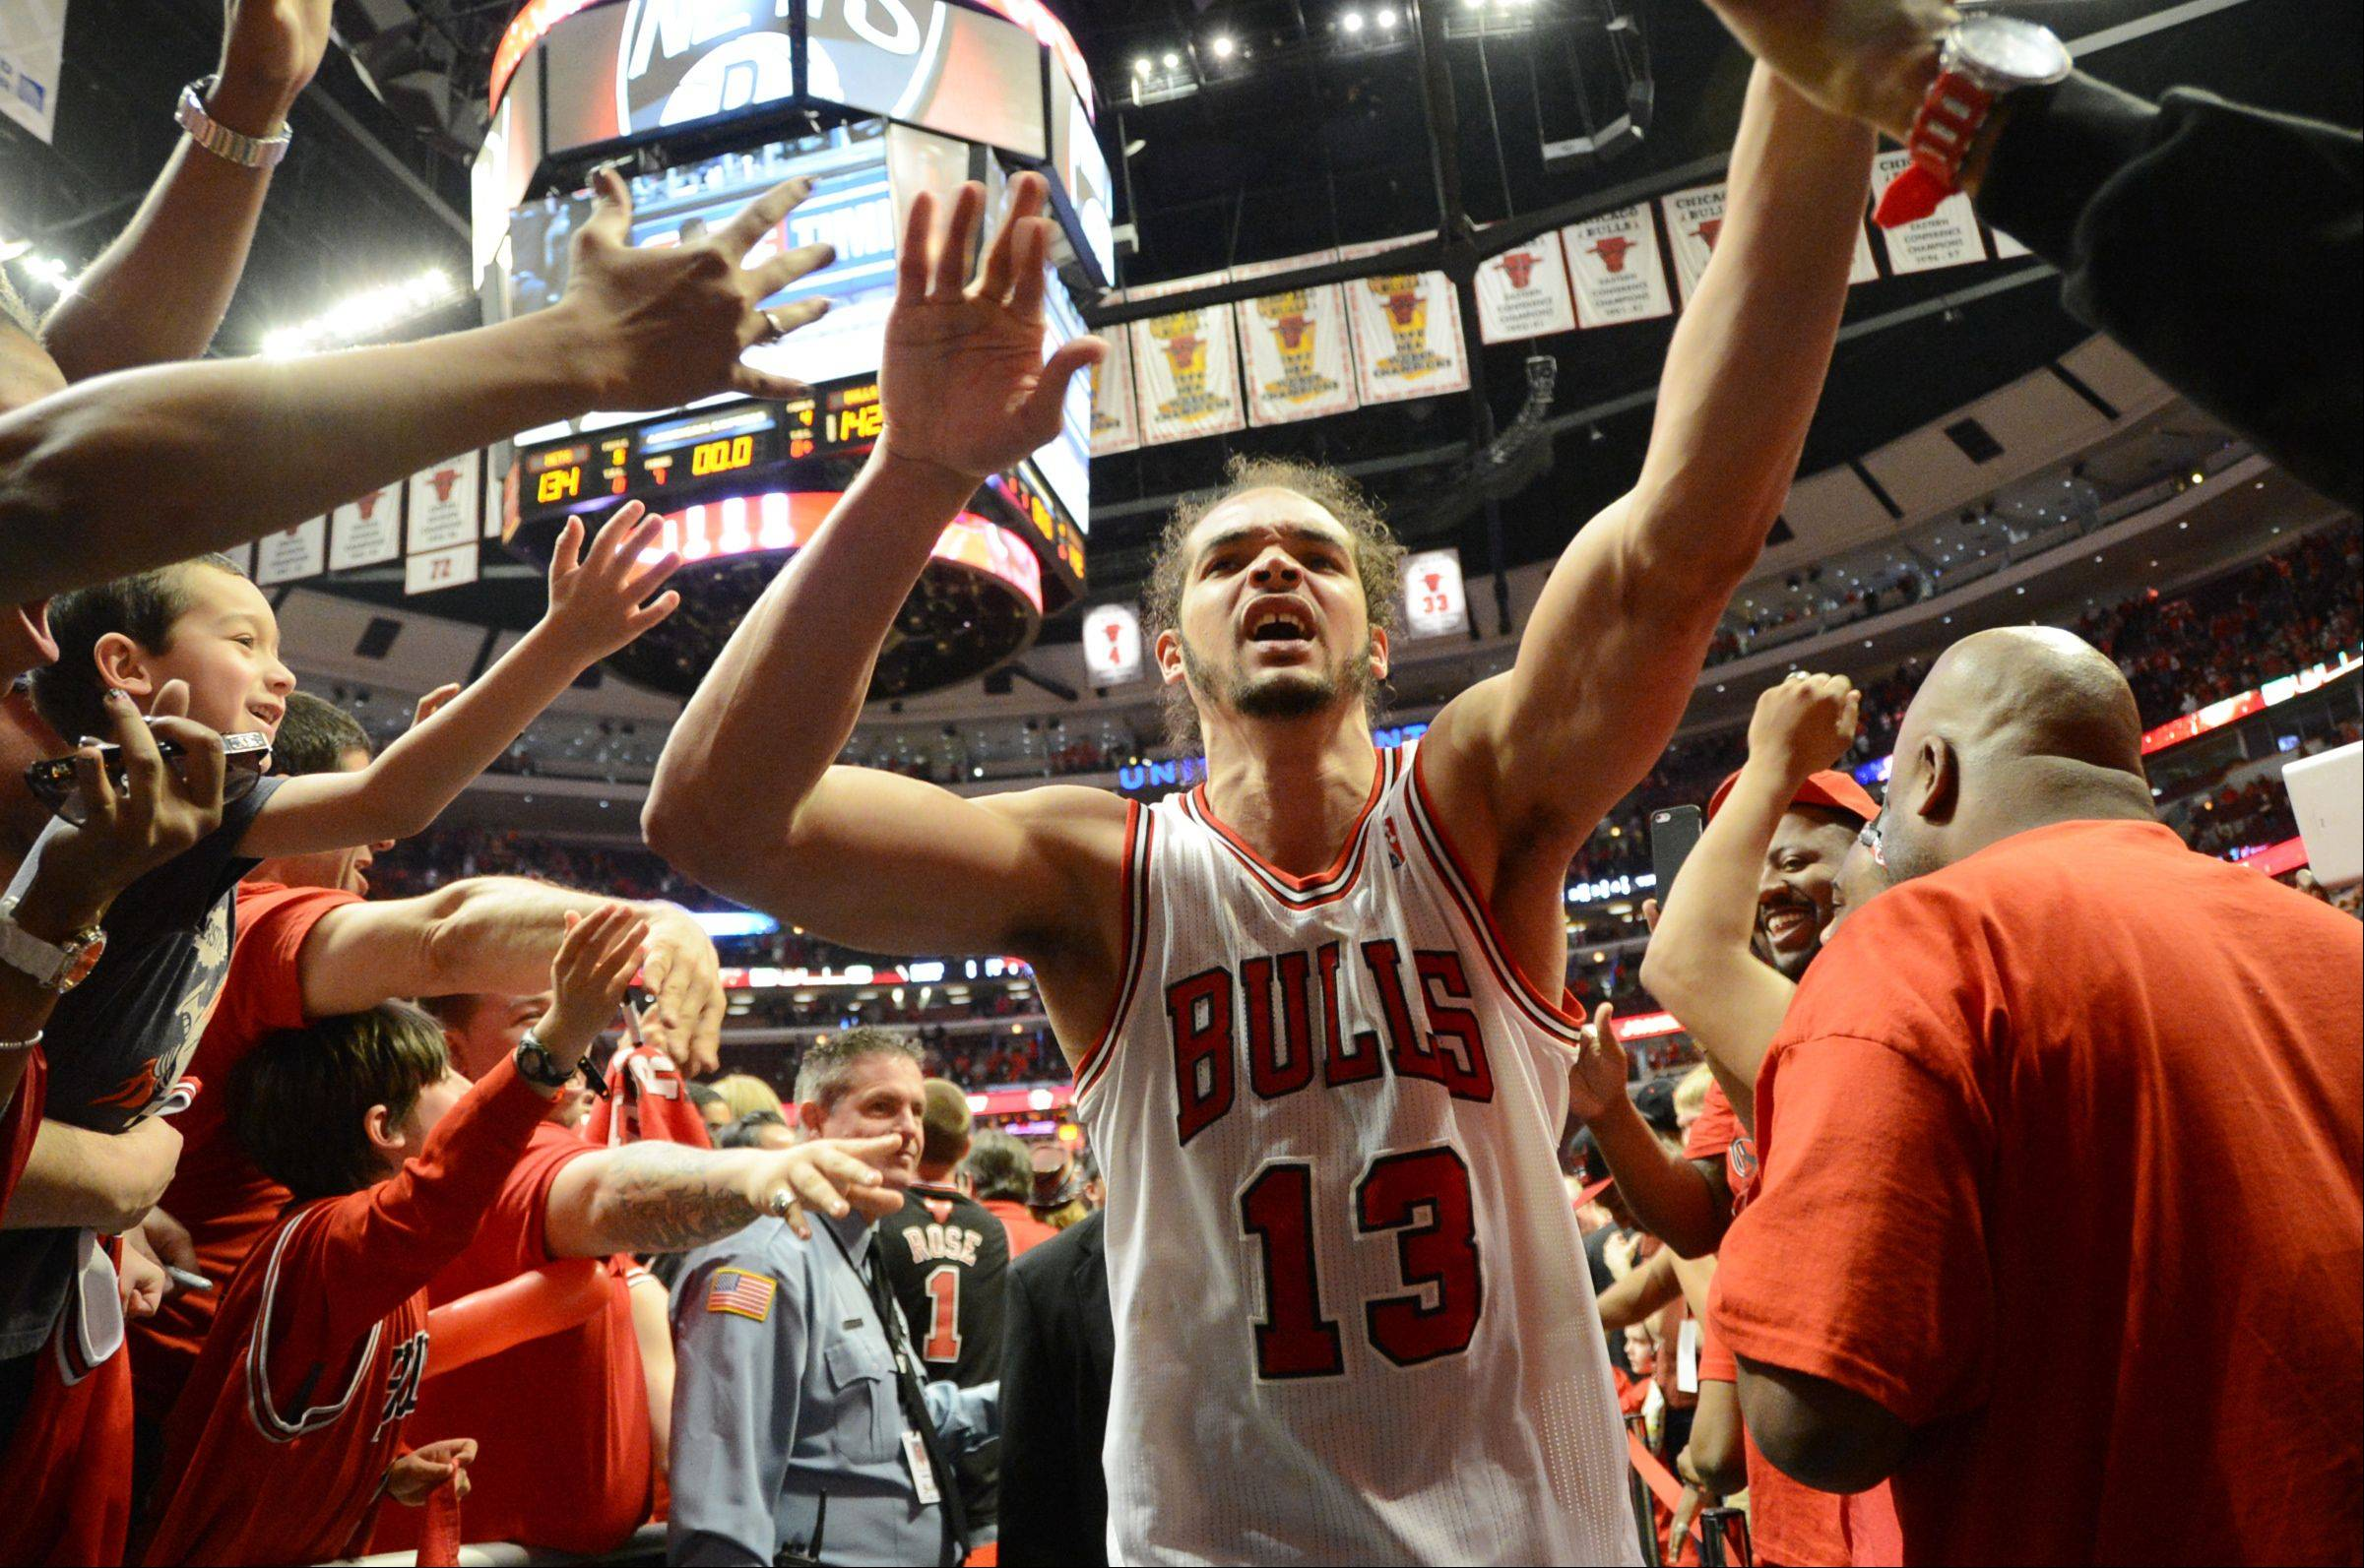 Joakim Noah is greeted by fans as he comes off the court Saturday during game 4 of the first round playoff game against the Brooklyn Nets at the United Center. The Bulls won in triple overtime 142-134.